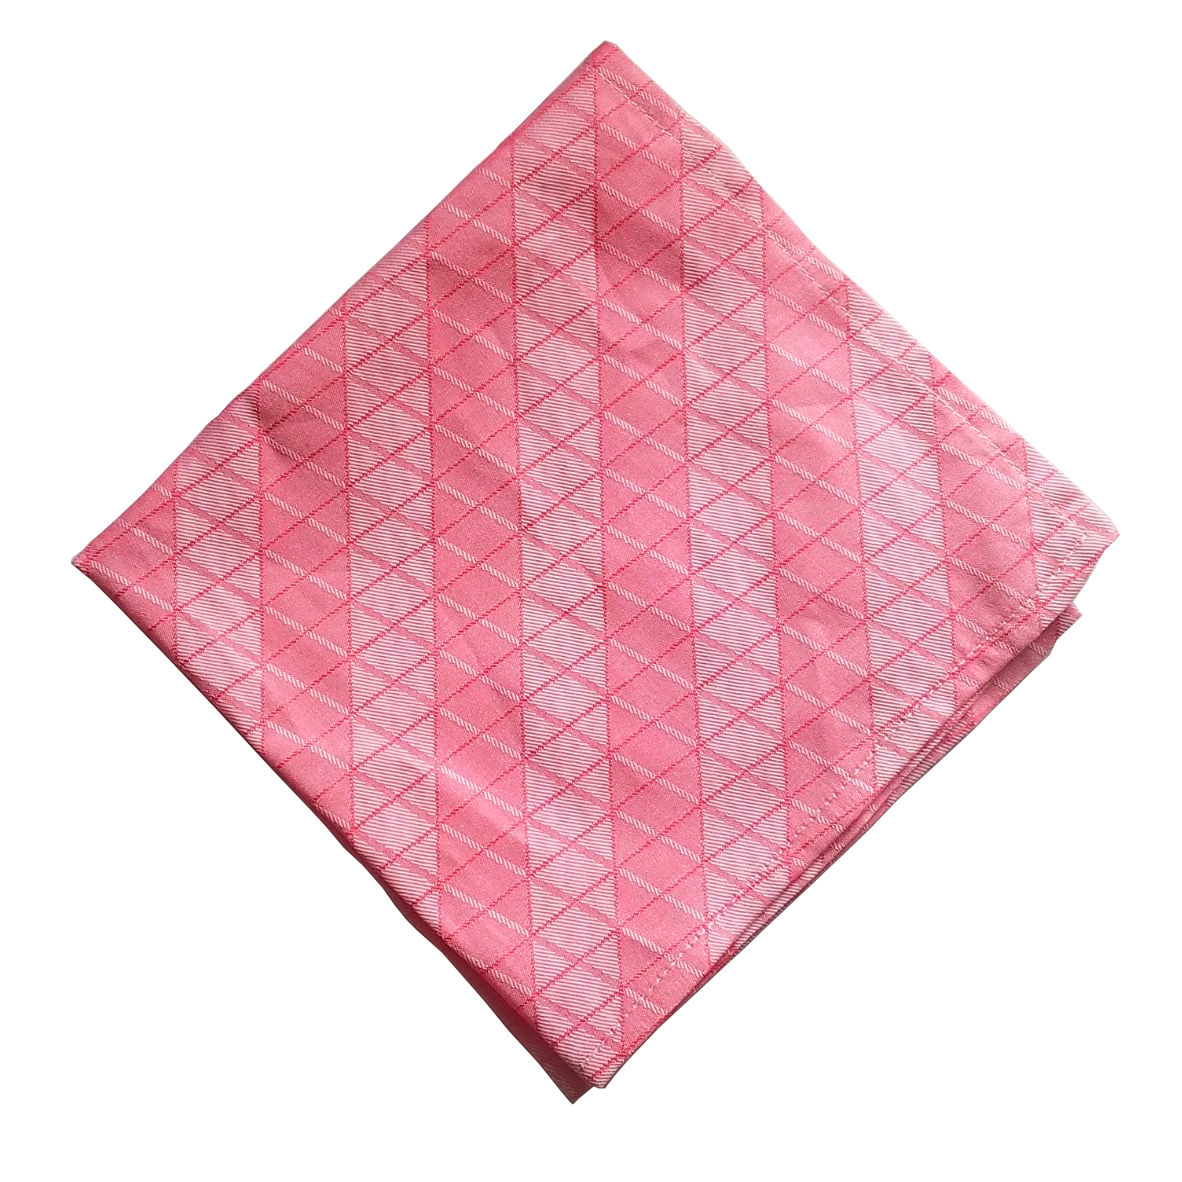 Salmon Irian pocket square